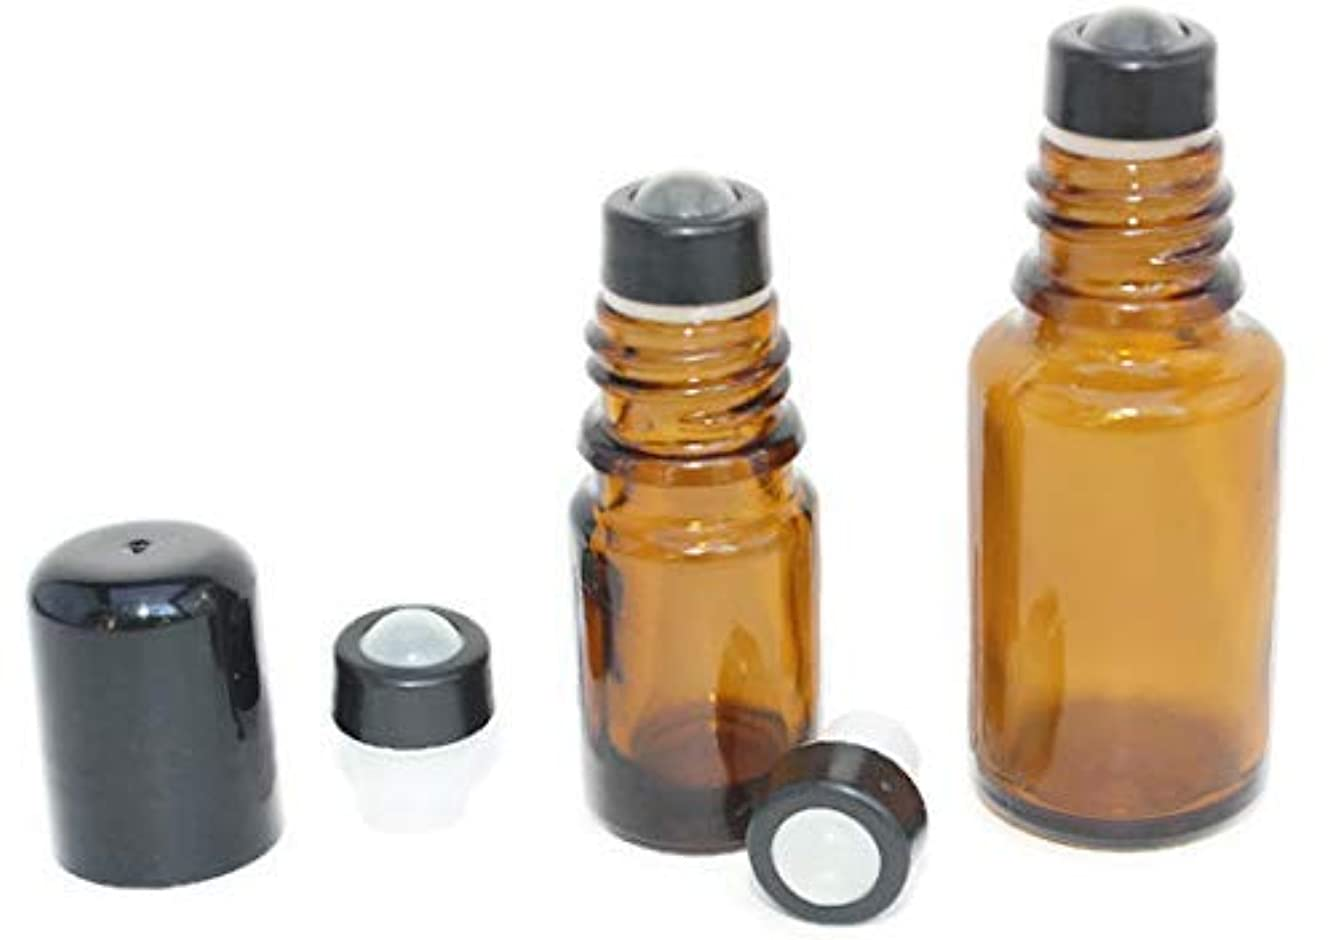 サイトコミュニティヘッドレスEssential Oil Roller Inserts for 5 and 15ml Essential Oil Bottles. Pack of 12 GLASS Leak Proof with removable...